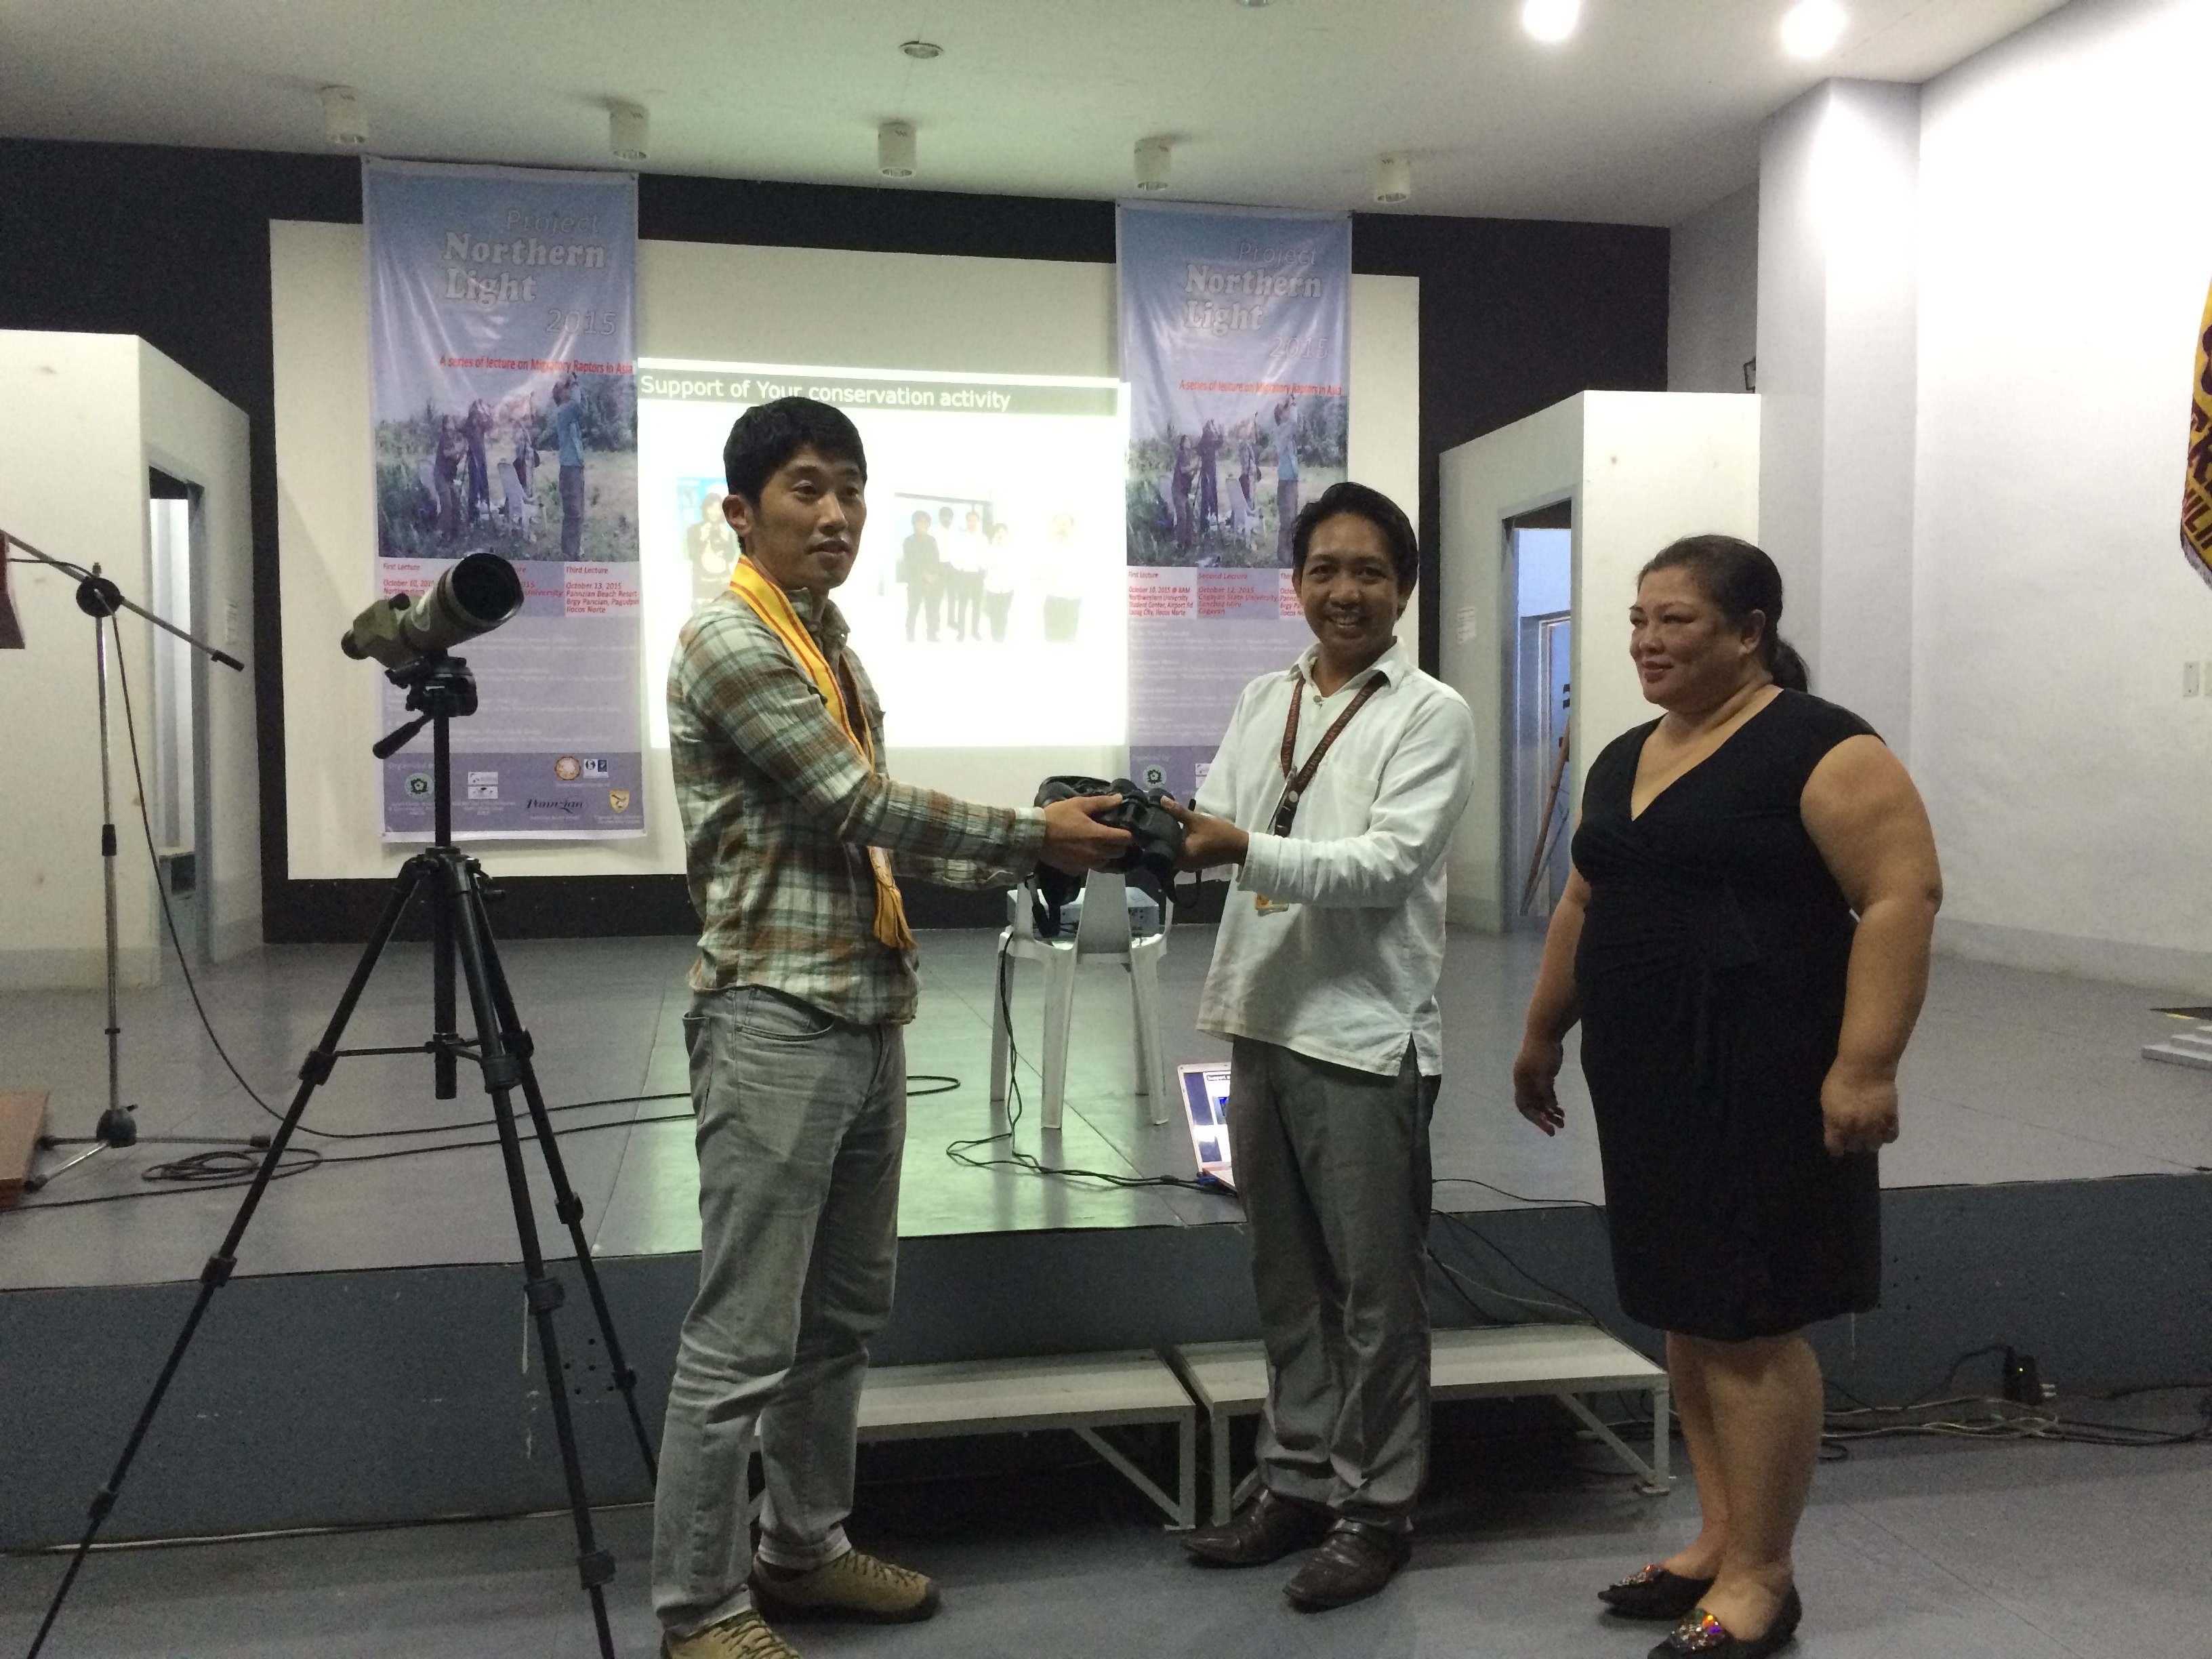 Seiichi Dejima handing over the new binoculars and spotting scope to NWU Michael Calaramo and EVP Ms Lisa Nicolas